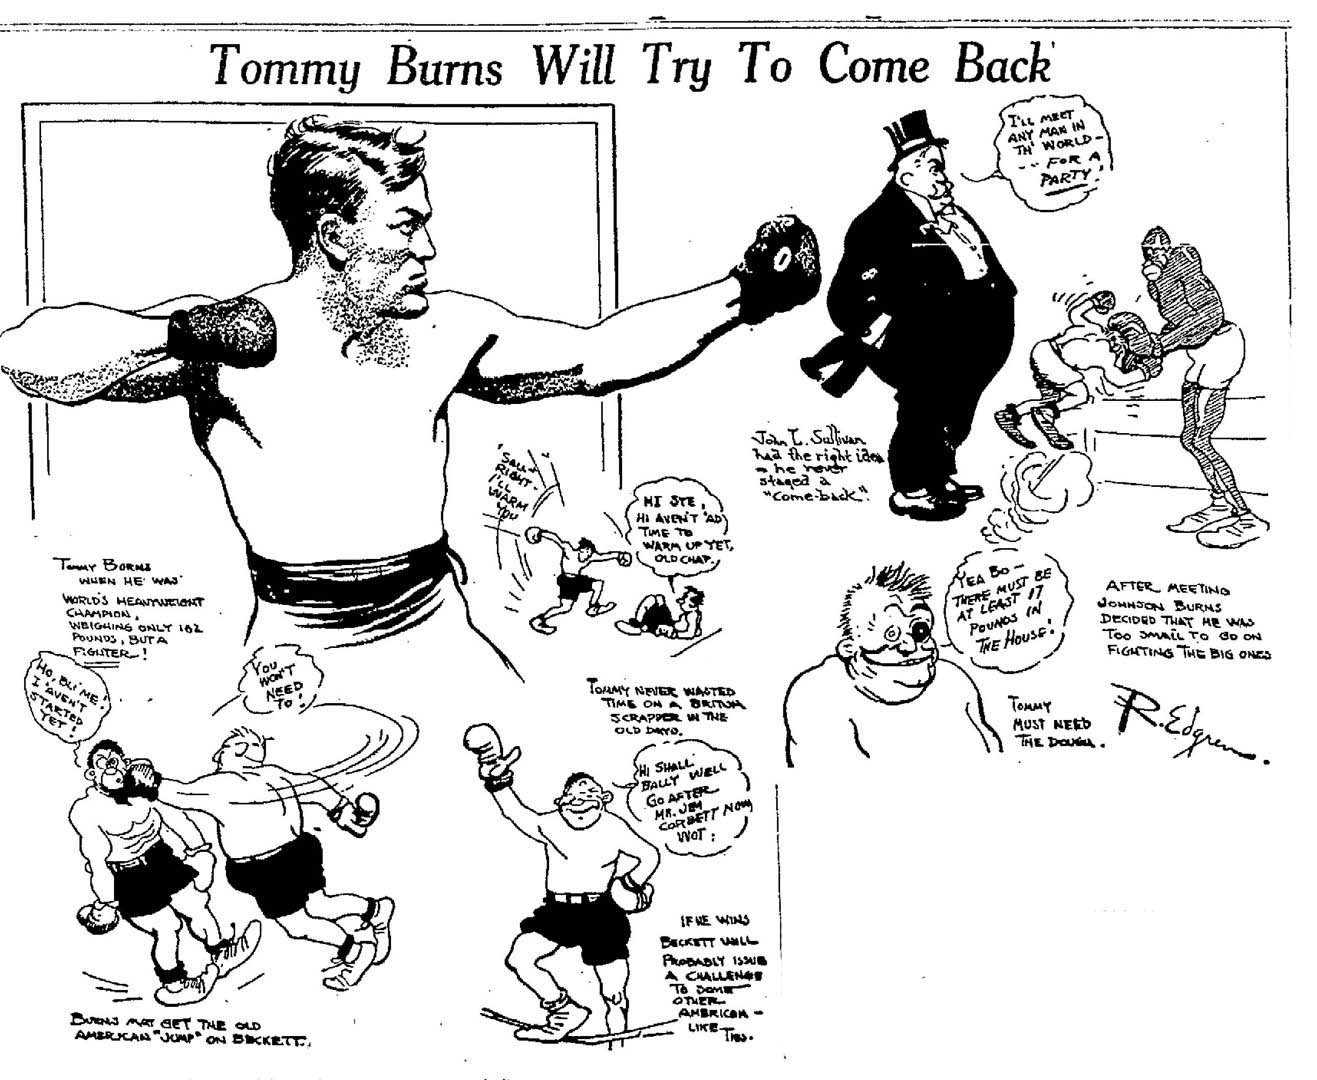 Burns-tommy-1920-07-03